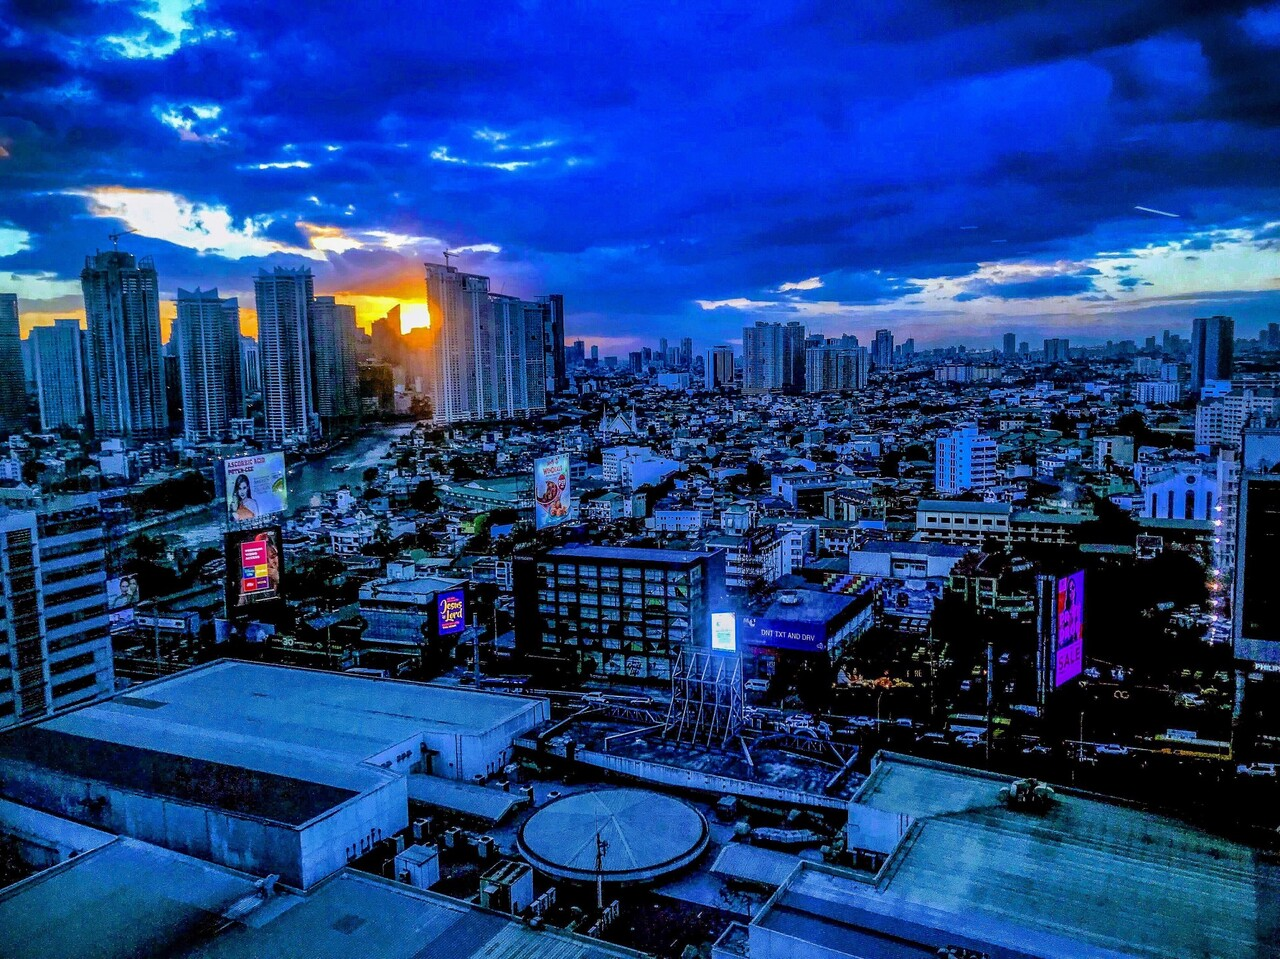 Tiger City Of The Philippines: 5 Fun Things To Do In Mandaluyong